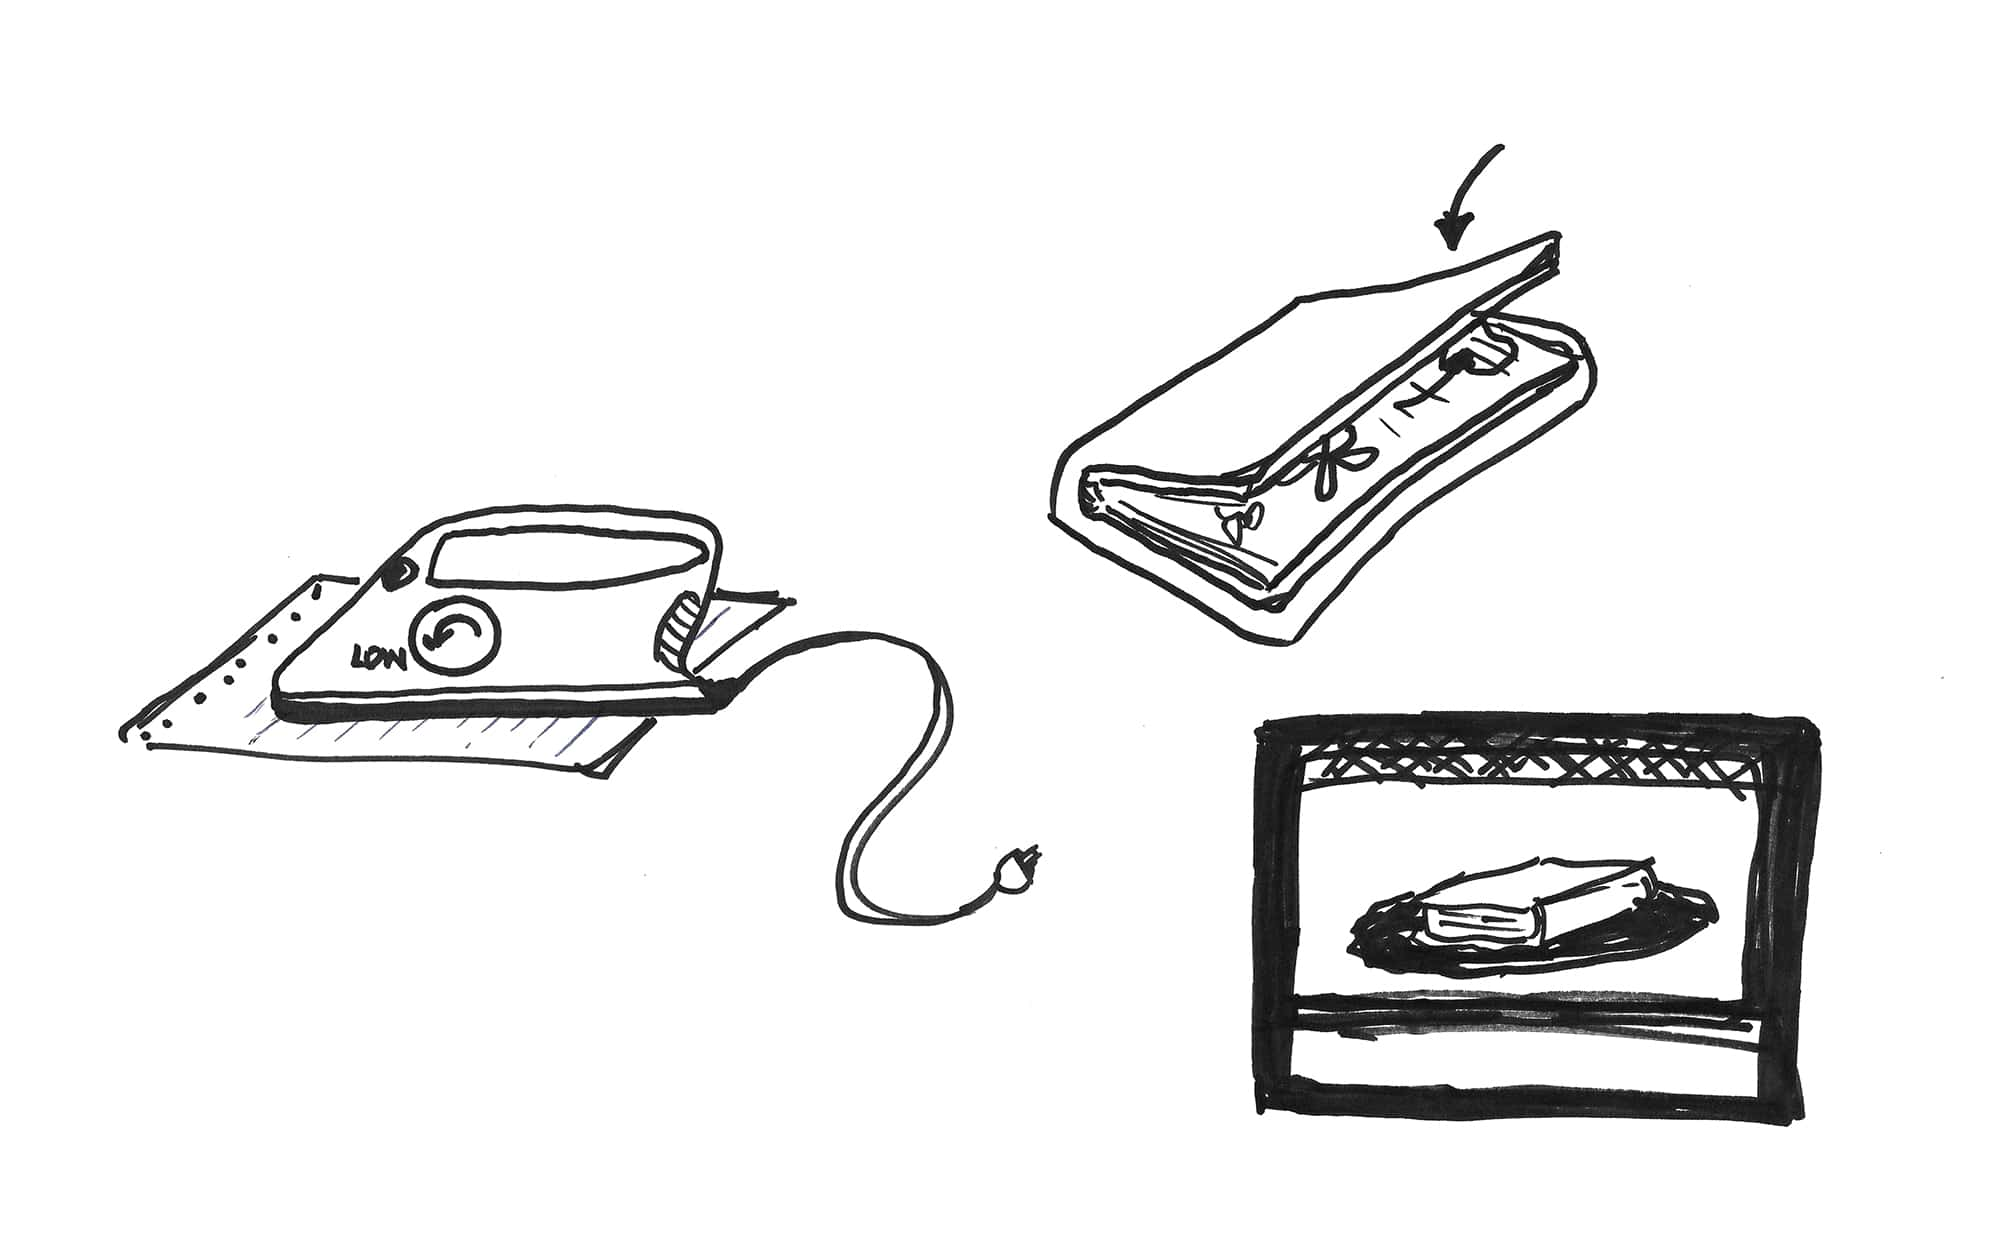 Sketch of ironing paper, inserting plants into book, and book being microwaved